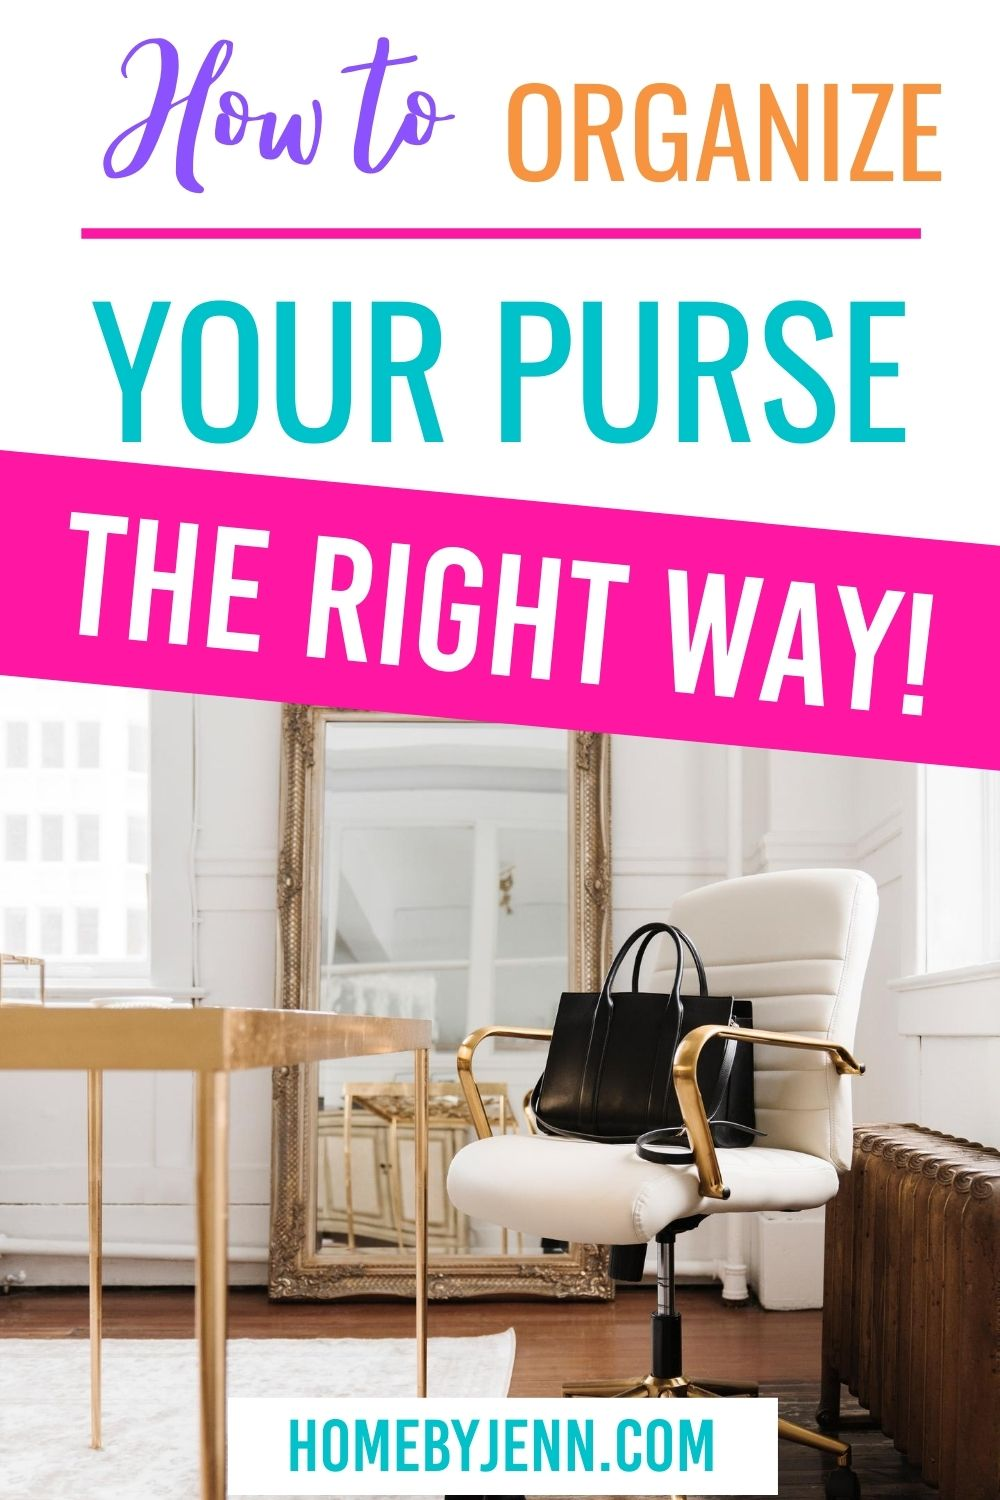 Learn how to organize your purse the right way. Say bye-bye to anxiety-inducing clutter, and hello to a clean and organized purse. #content #guide #tips #organizing #simple #clutter #zipperpouch via @homebyjenn